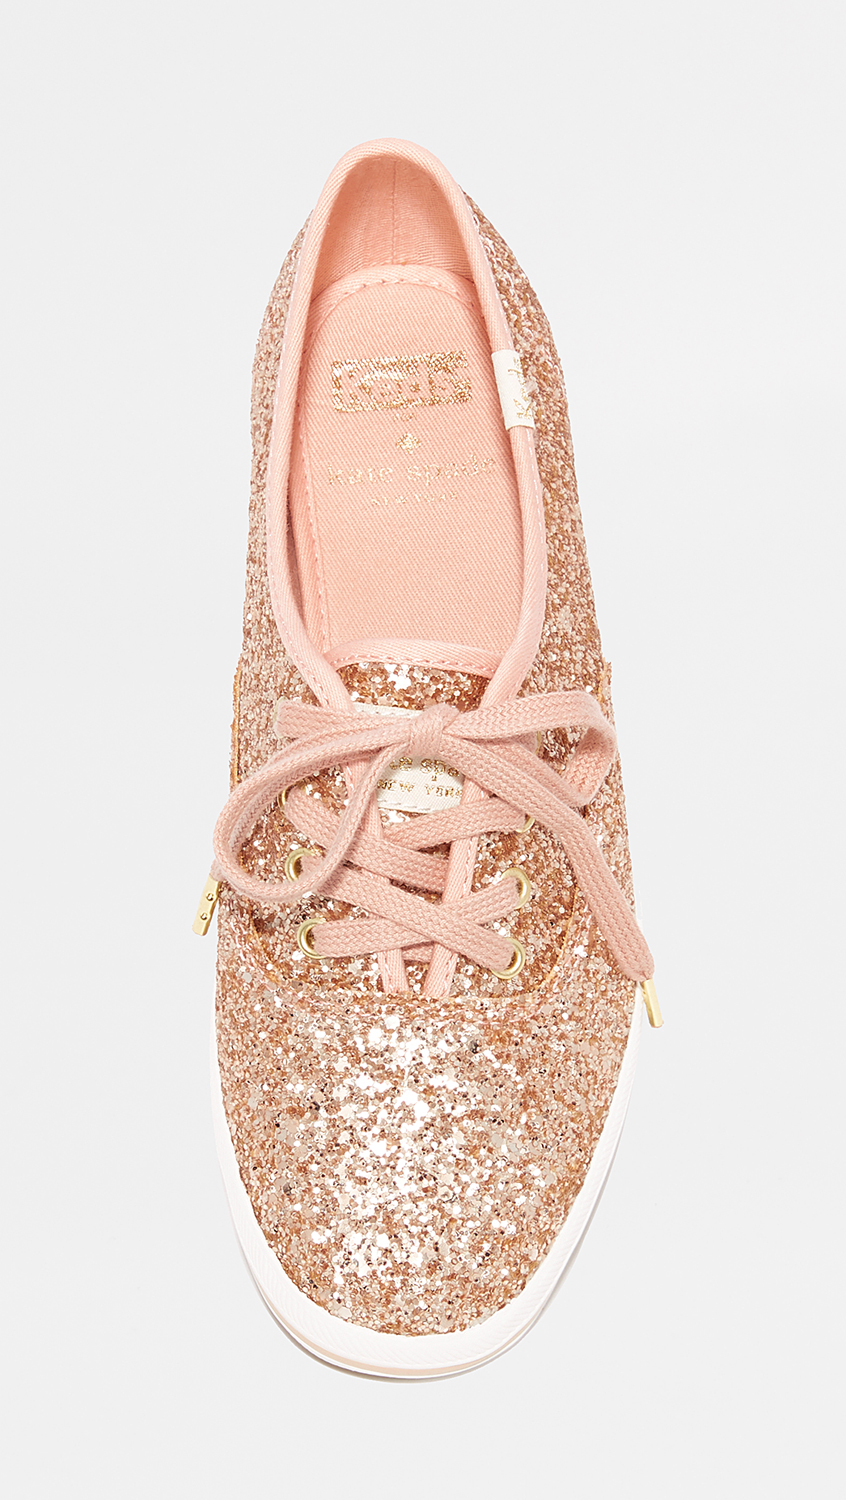 bb6c137415b Keds x Kate Spade New York Glitter Sneakers